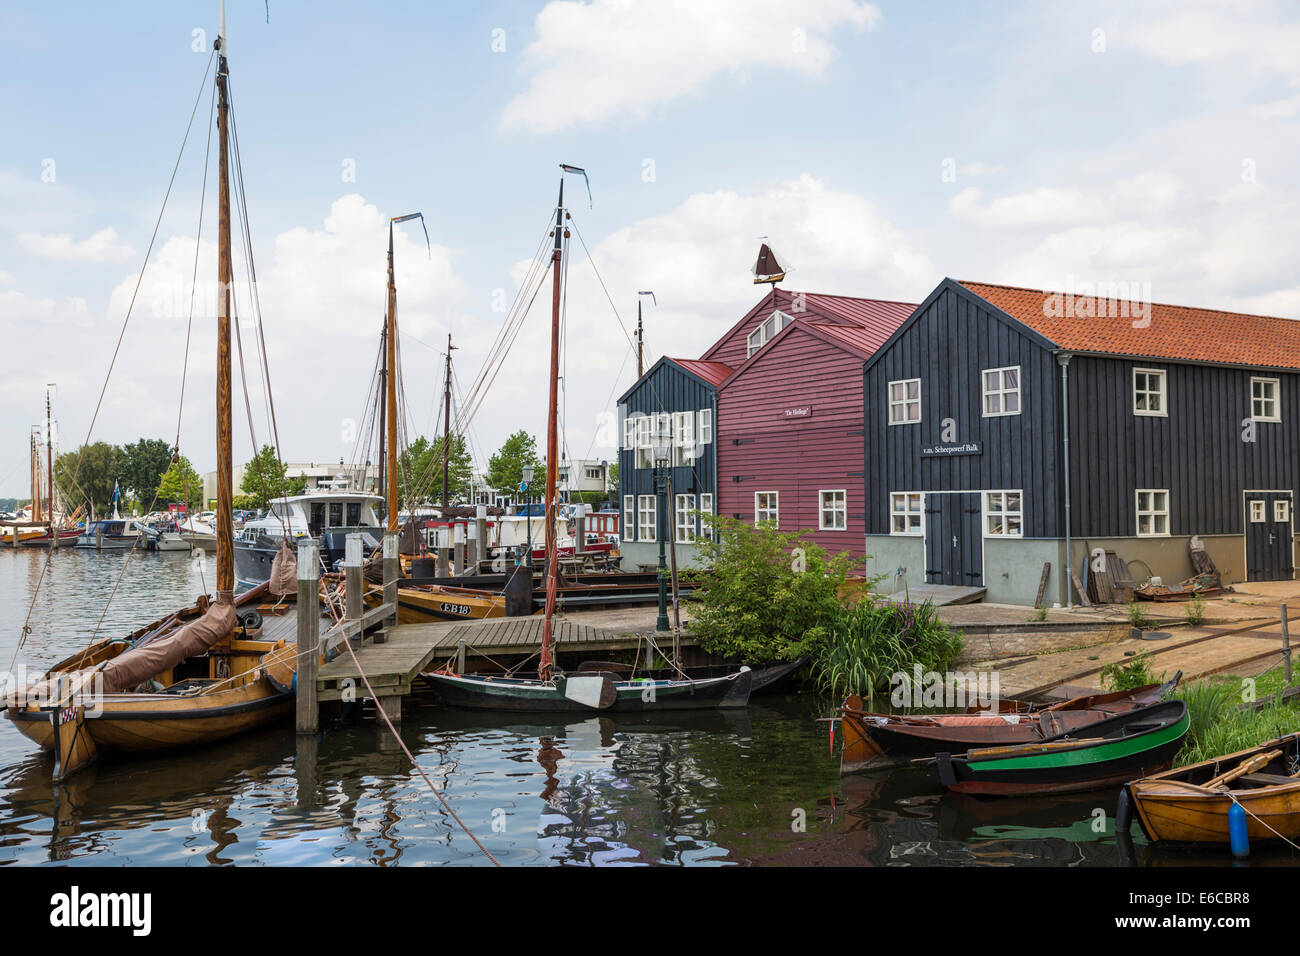 Harbor of Elburg, an old historical Hanseatic city in the Netherlands, with old wooden fishing boats. - Stock Image